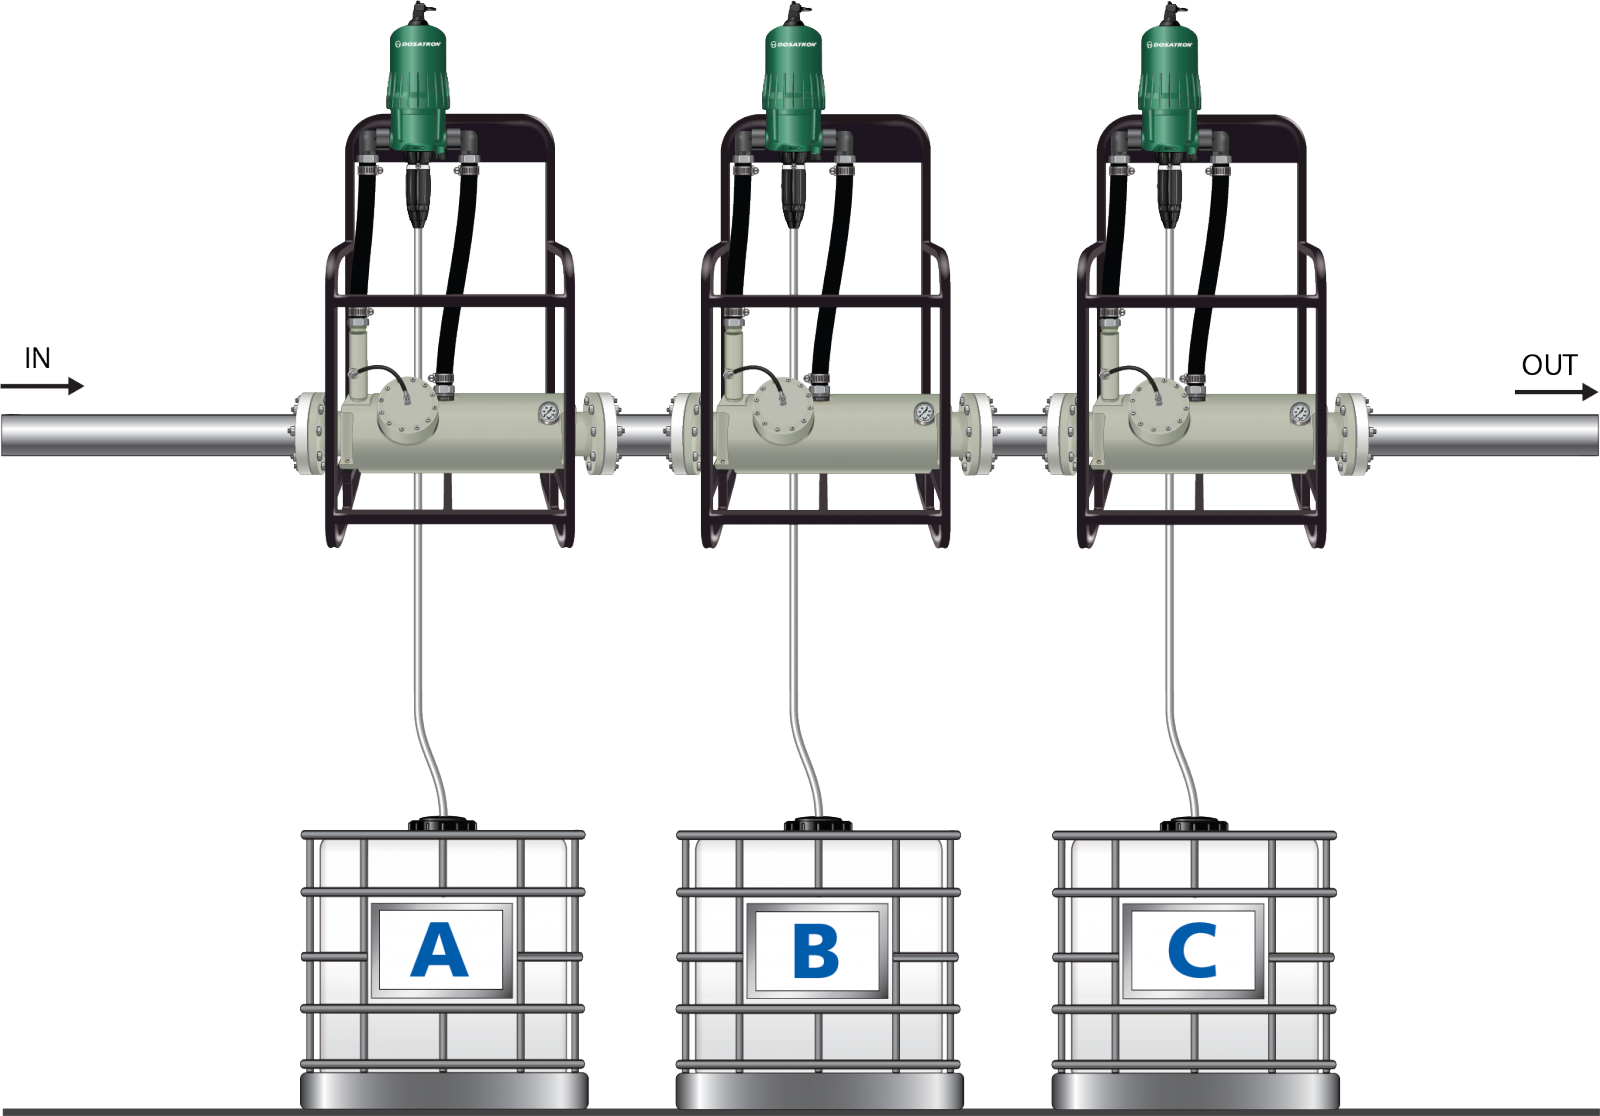 Allows for simultaneous dosing of three different solutions at different dilution rates.